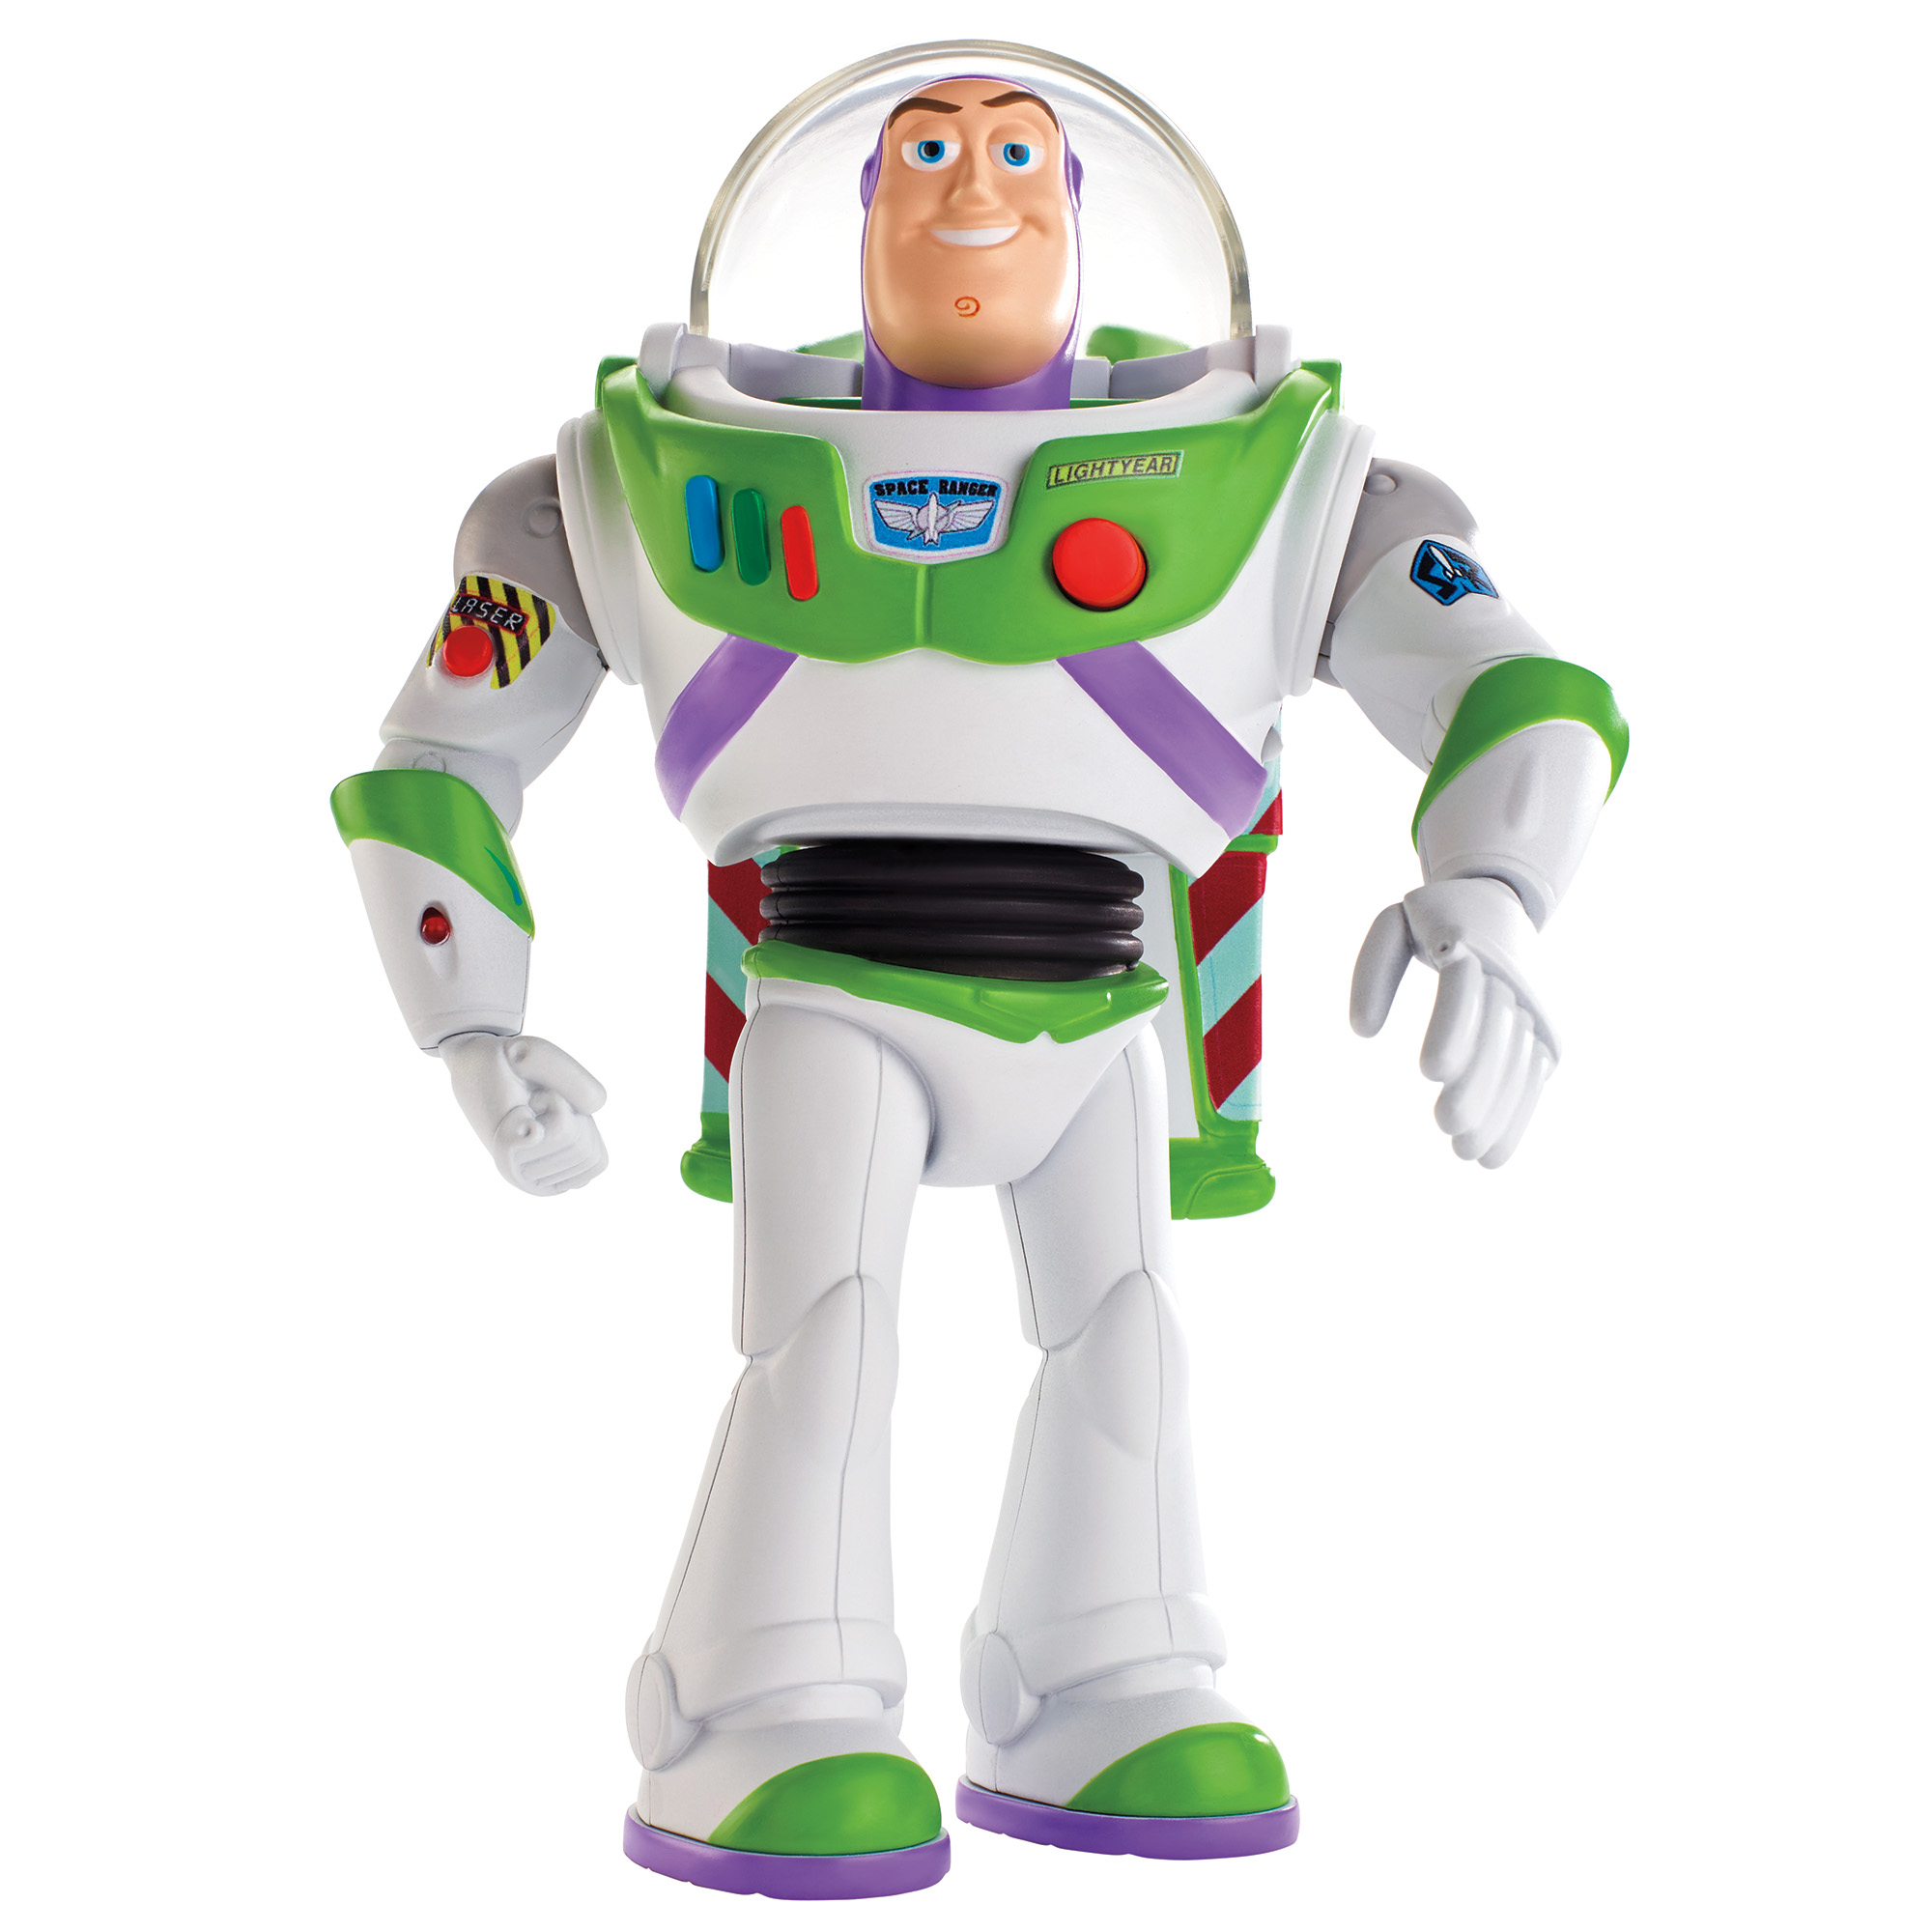 Picture of Disney Pixar Toy Story Ultimate Walking Buzz Lightyear